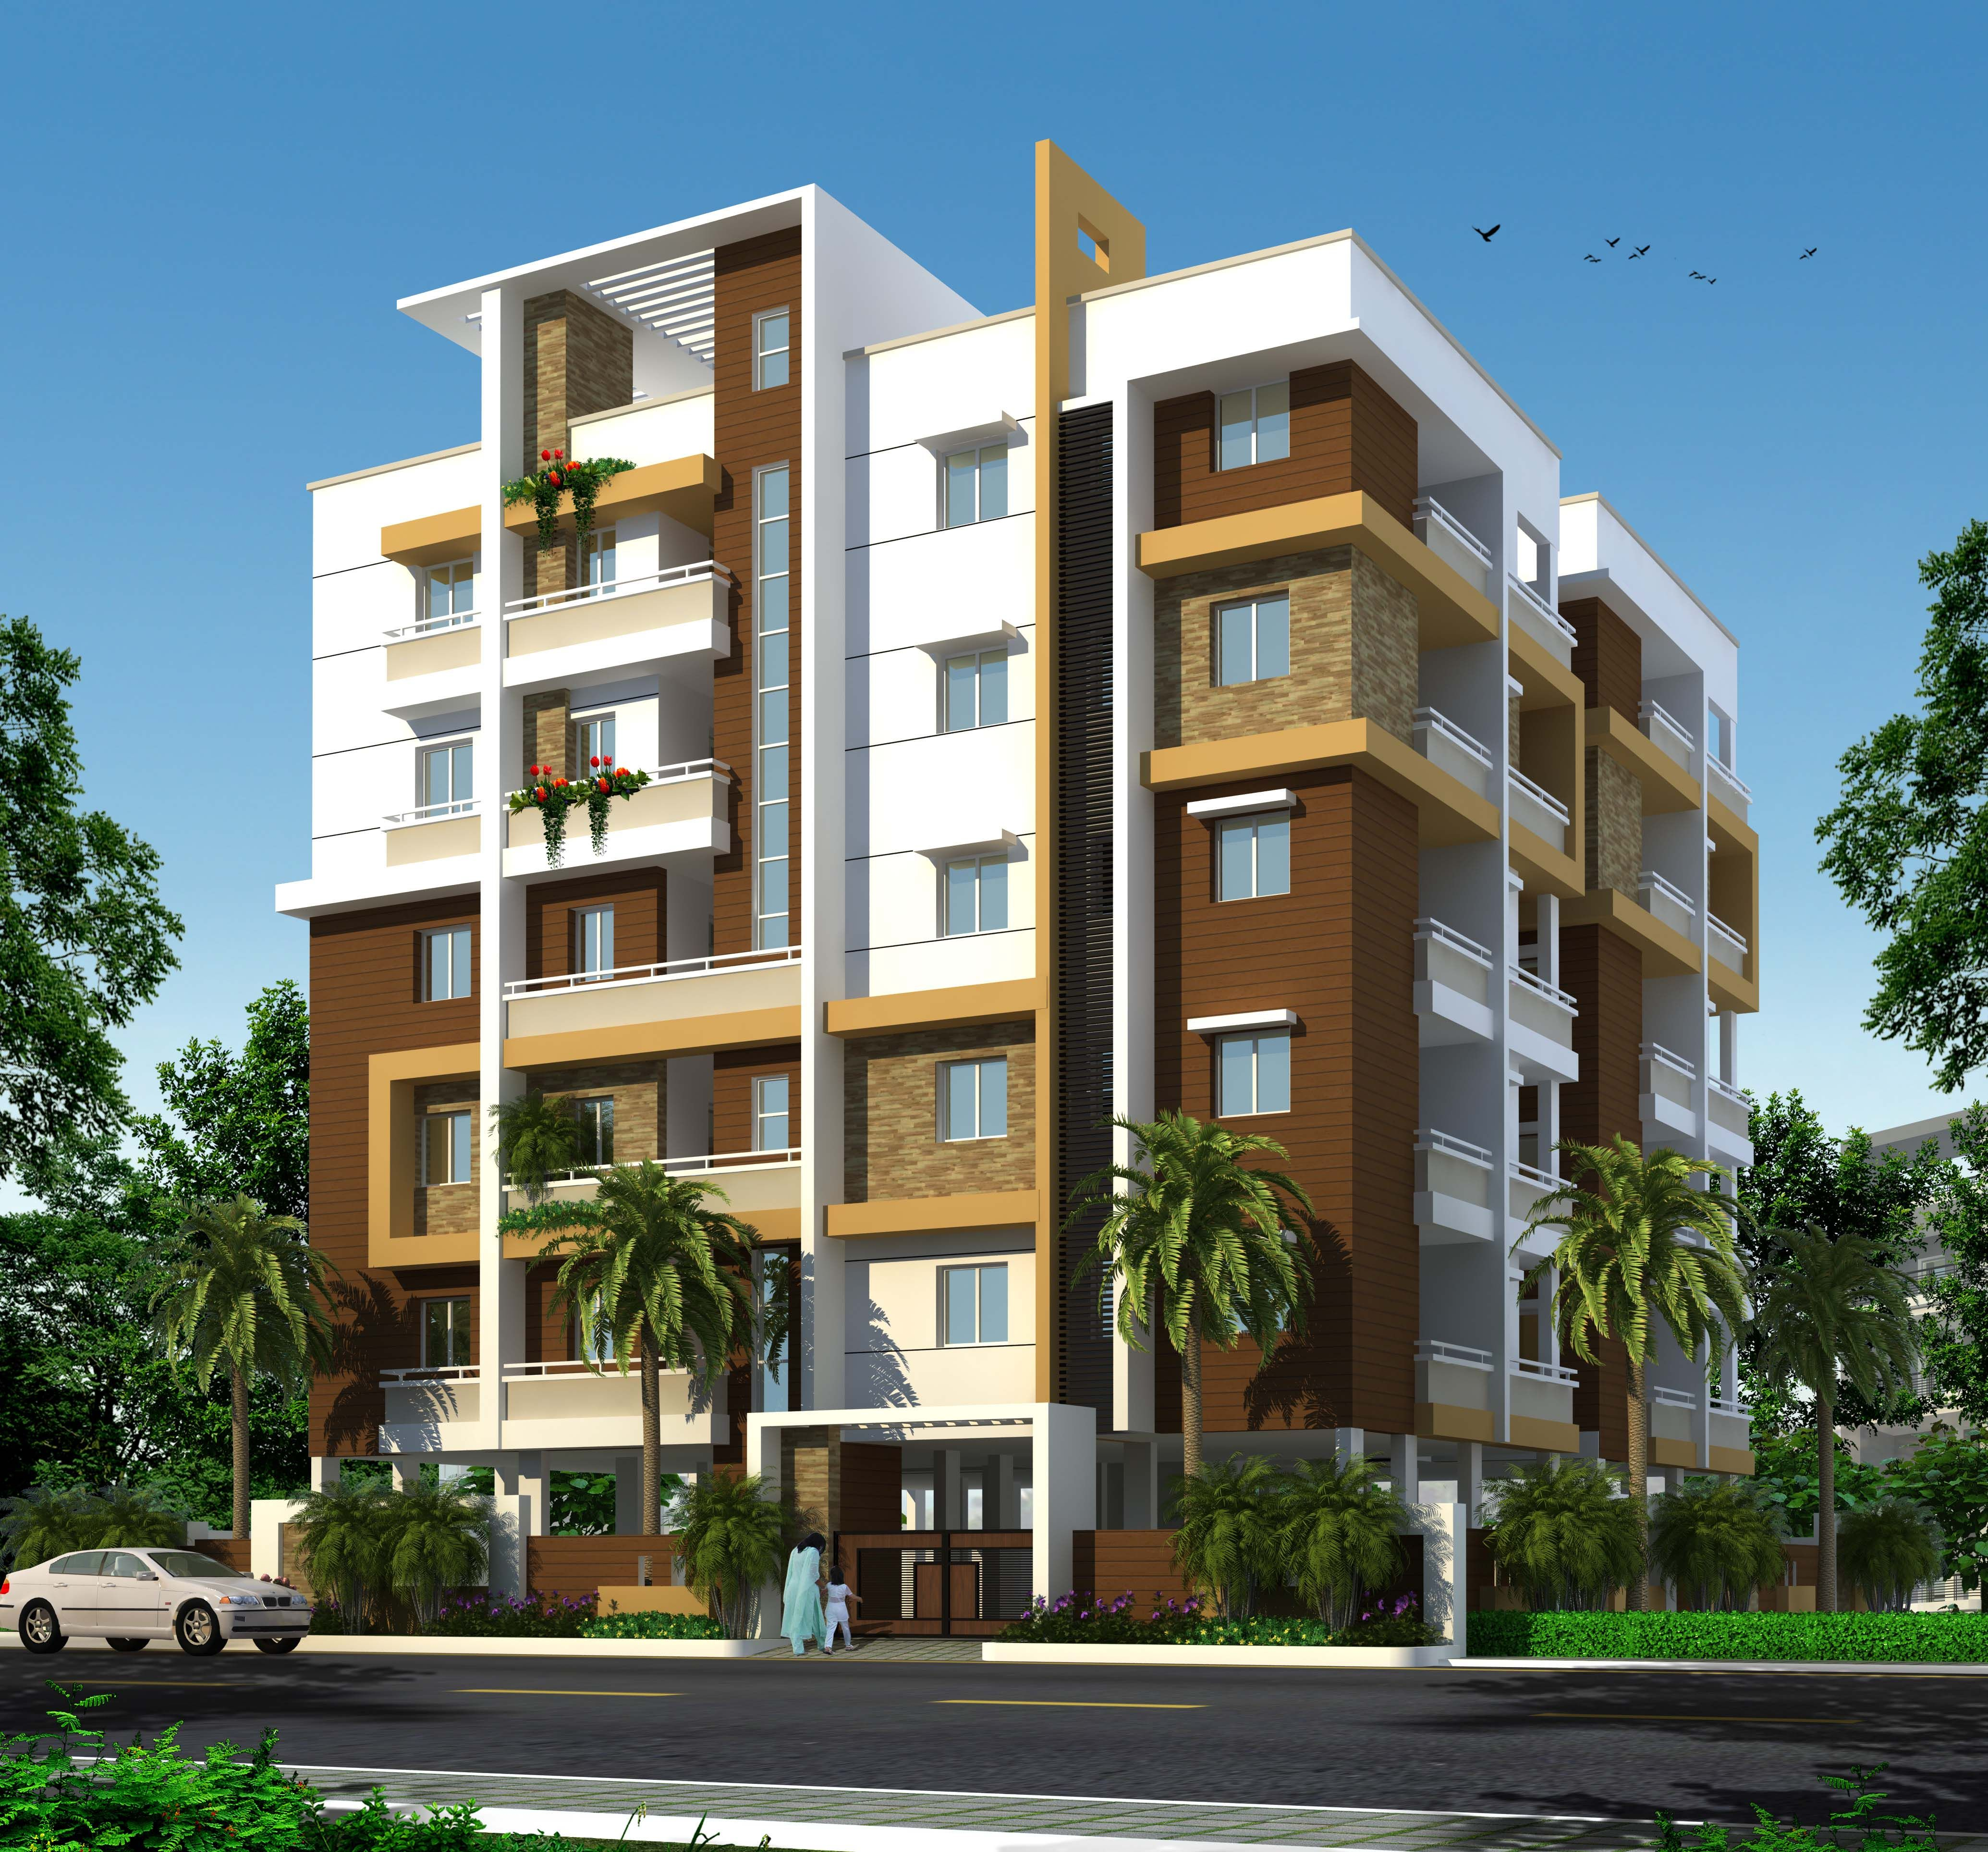 apartments designed by architects in bangalore Google